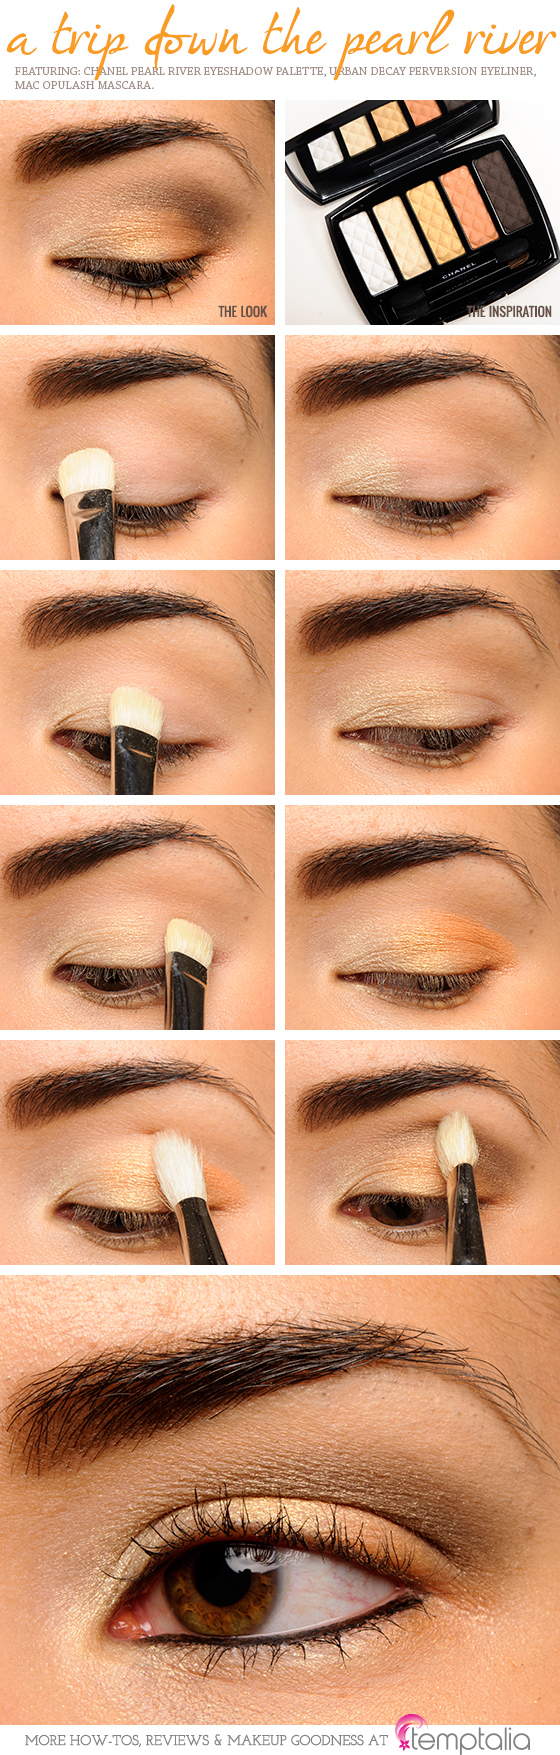 Chanel Pearl River Ombres Matelassees Eyeshadow Palette